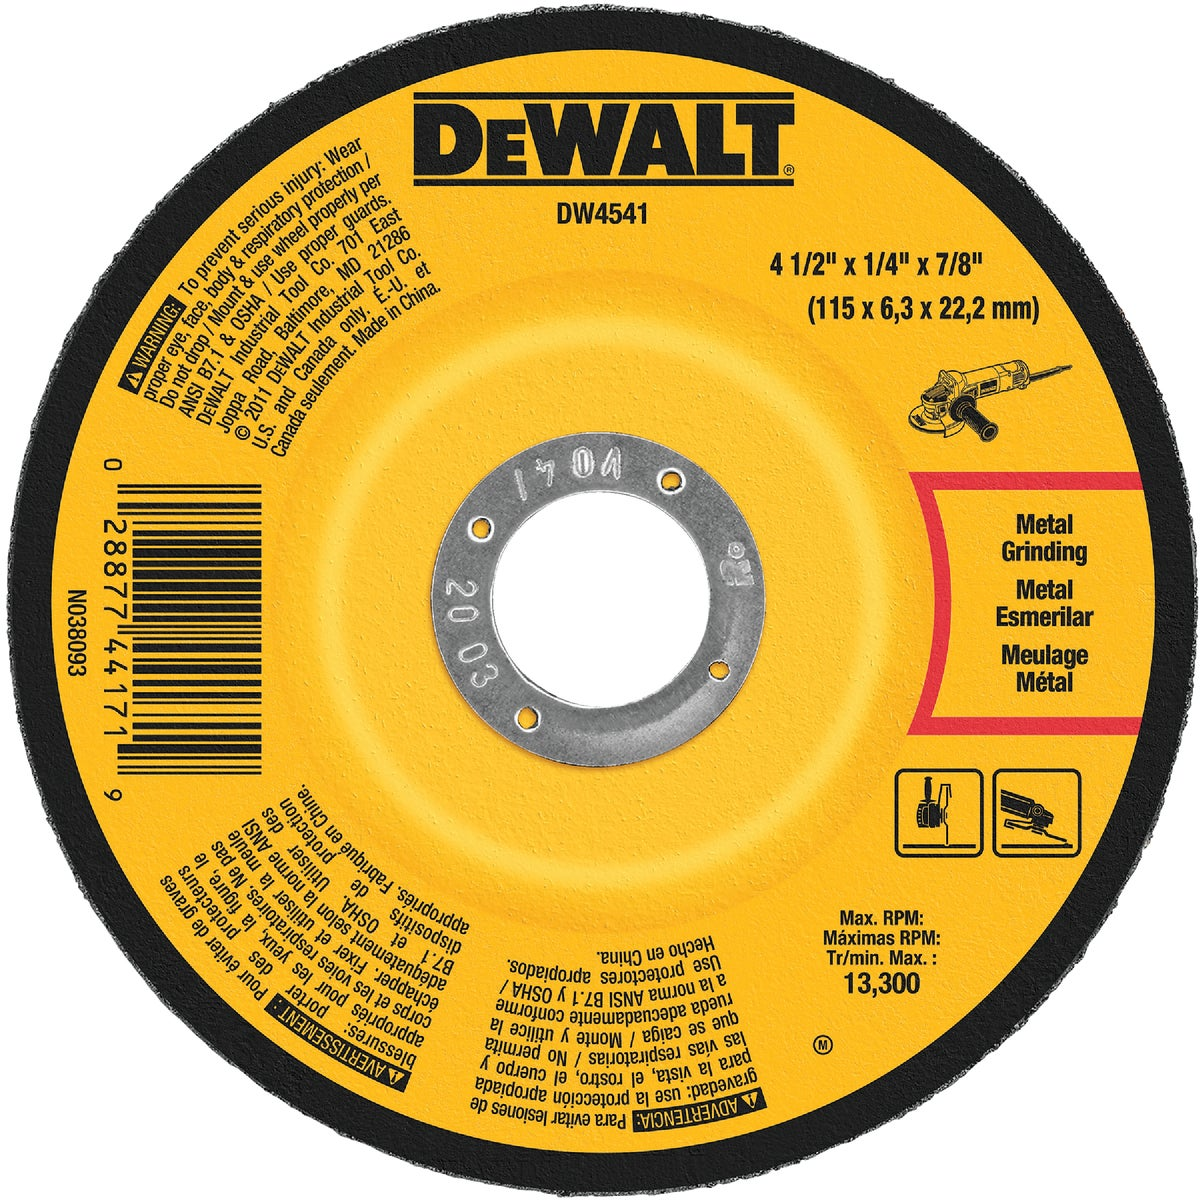 "4-1/2"" ABRASIVE WHEEL - DW4541 by DeWalt"